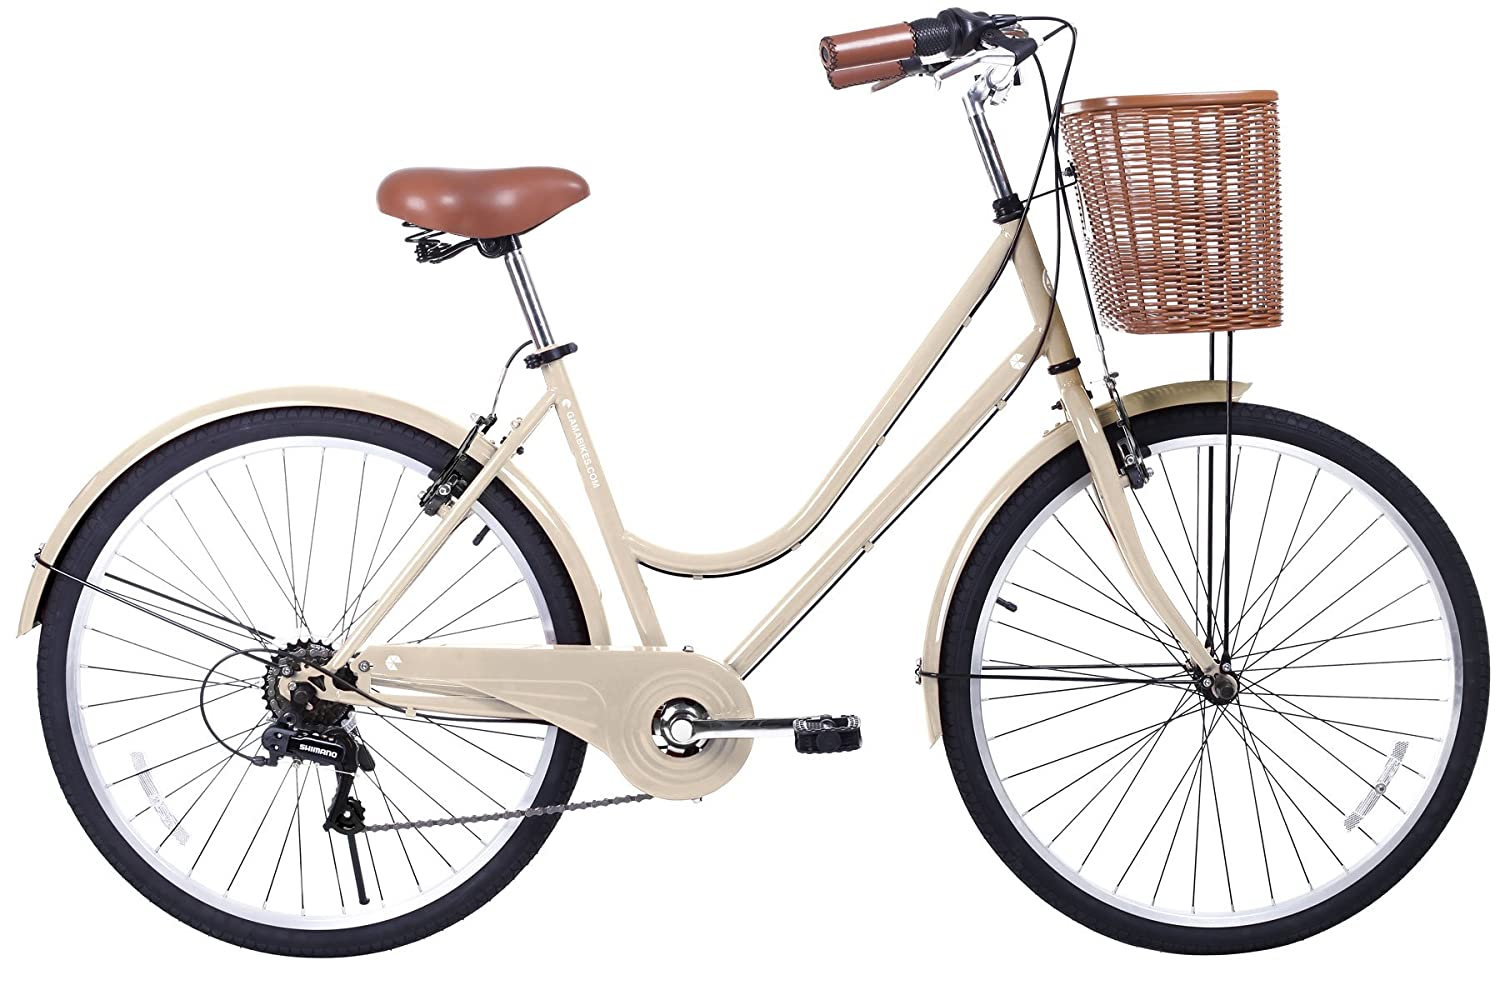 Commuter Bikes For Women Made In Italy Gama Bikes Women s City Basic